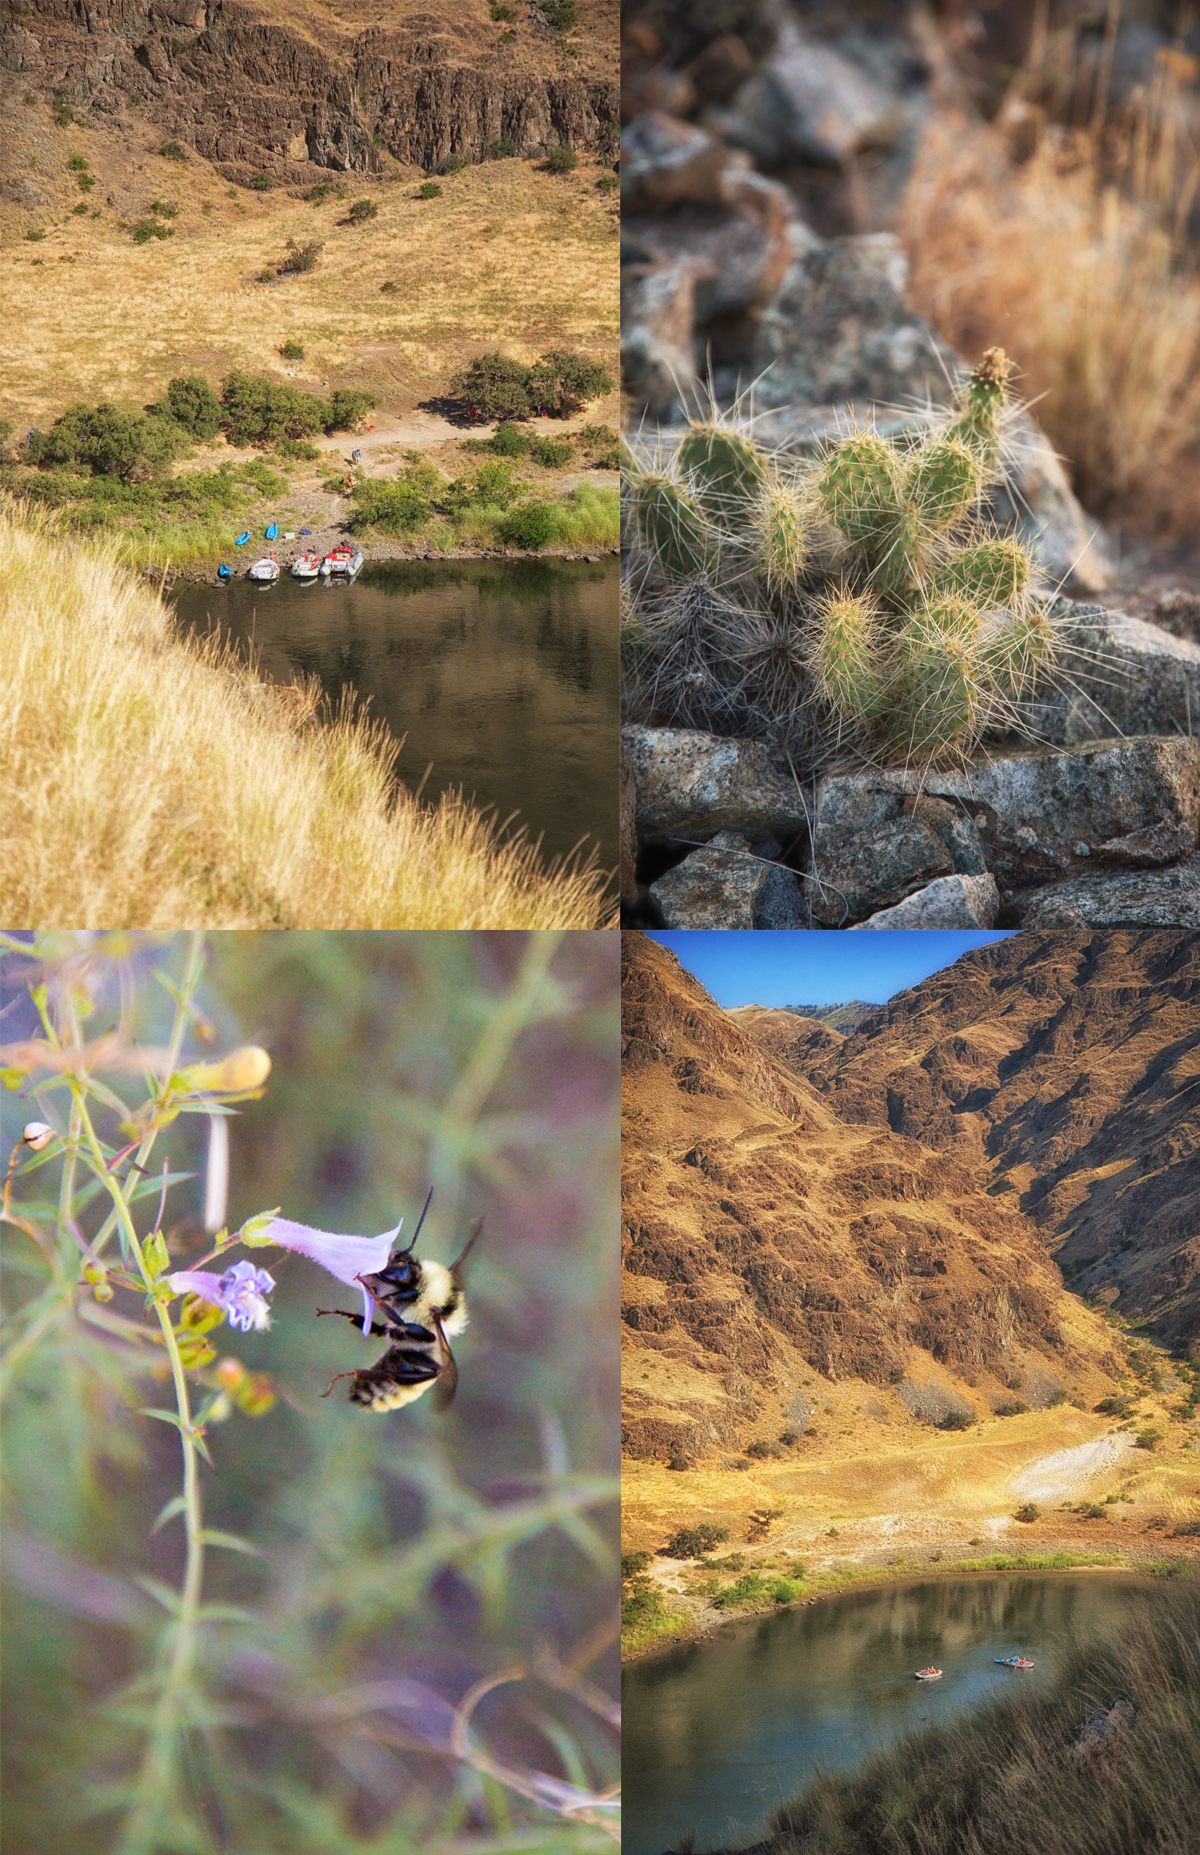 Rafting in Hells Canyon via J5MM.com